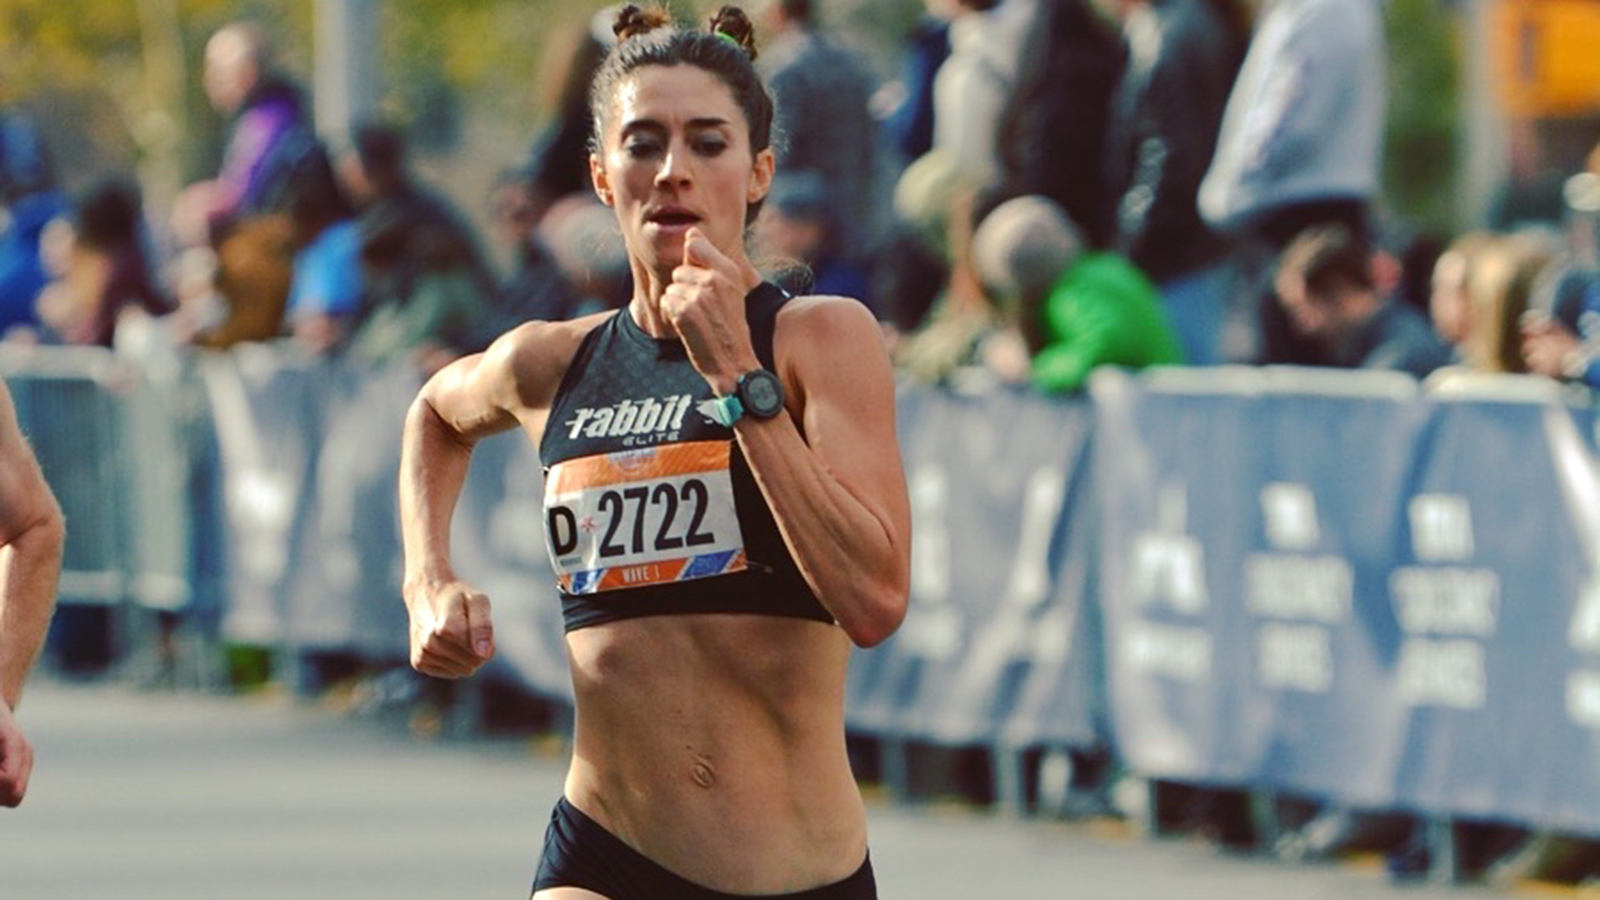 Local runner and assistant professor of anthropology at Stony Brook University Gabrielle Russo running the 2018 Staten Island Half